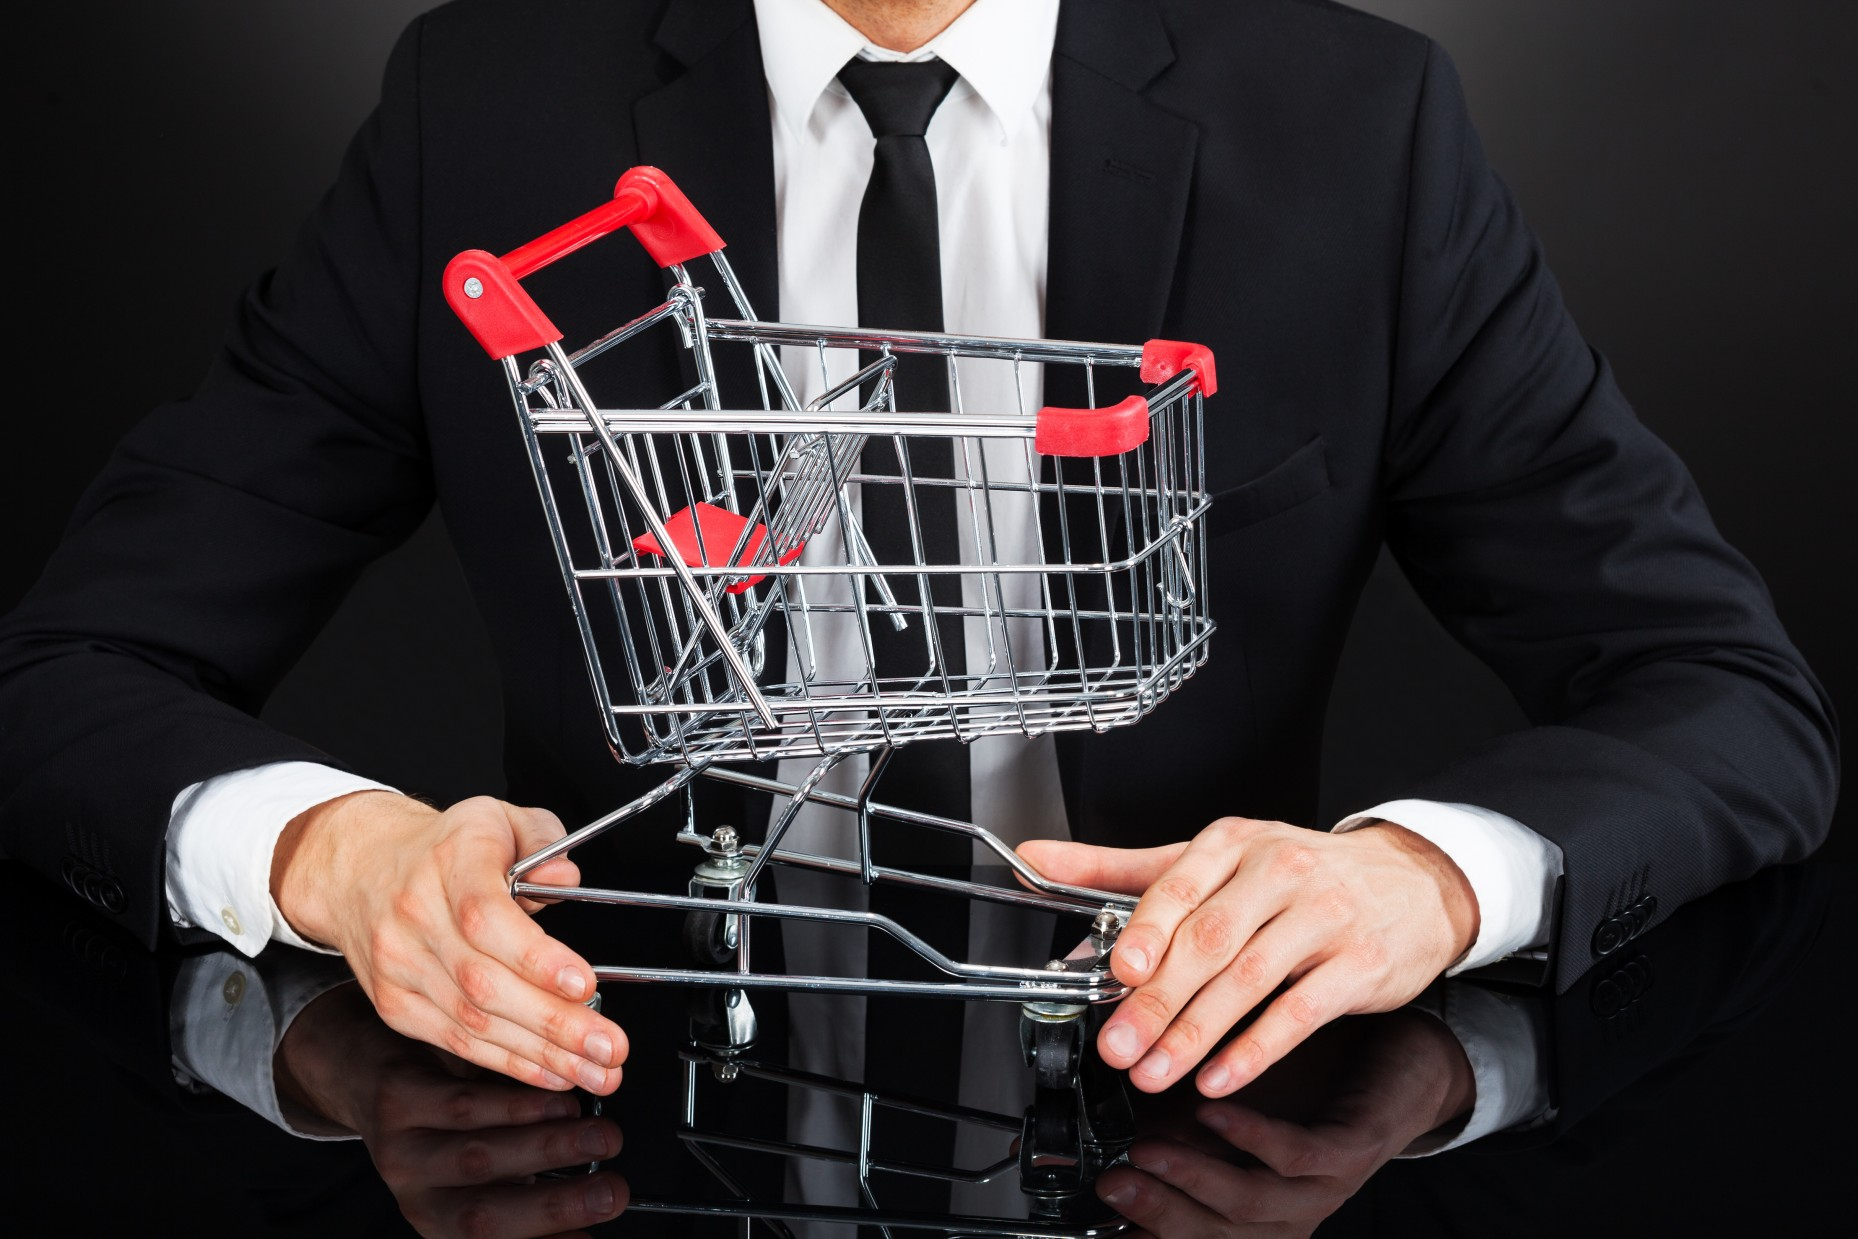 Businessman Holding Shopping Cart Model At Desk